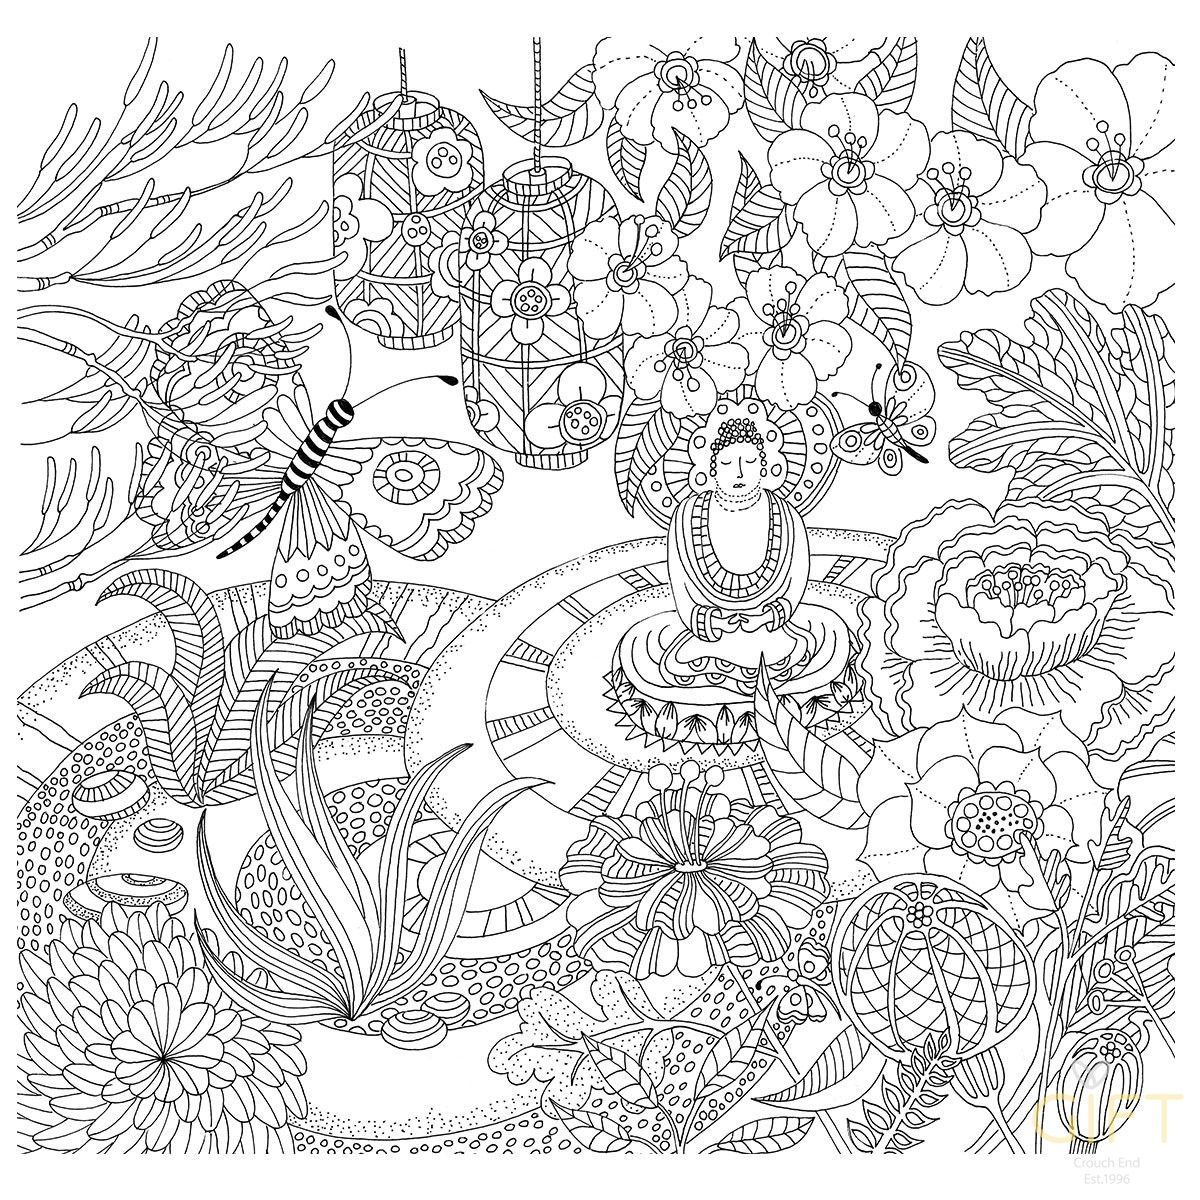 Zen Garden Artists Coloring Book